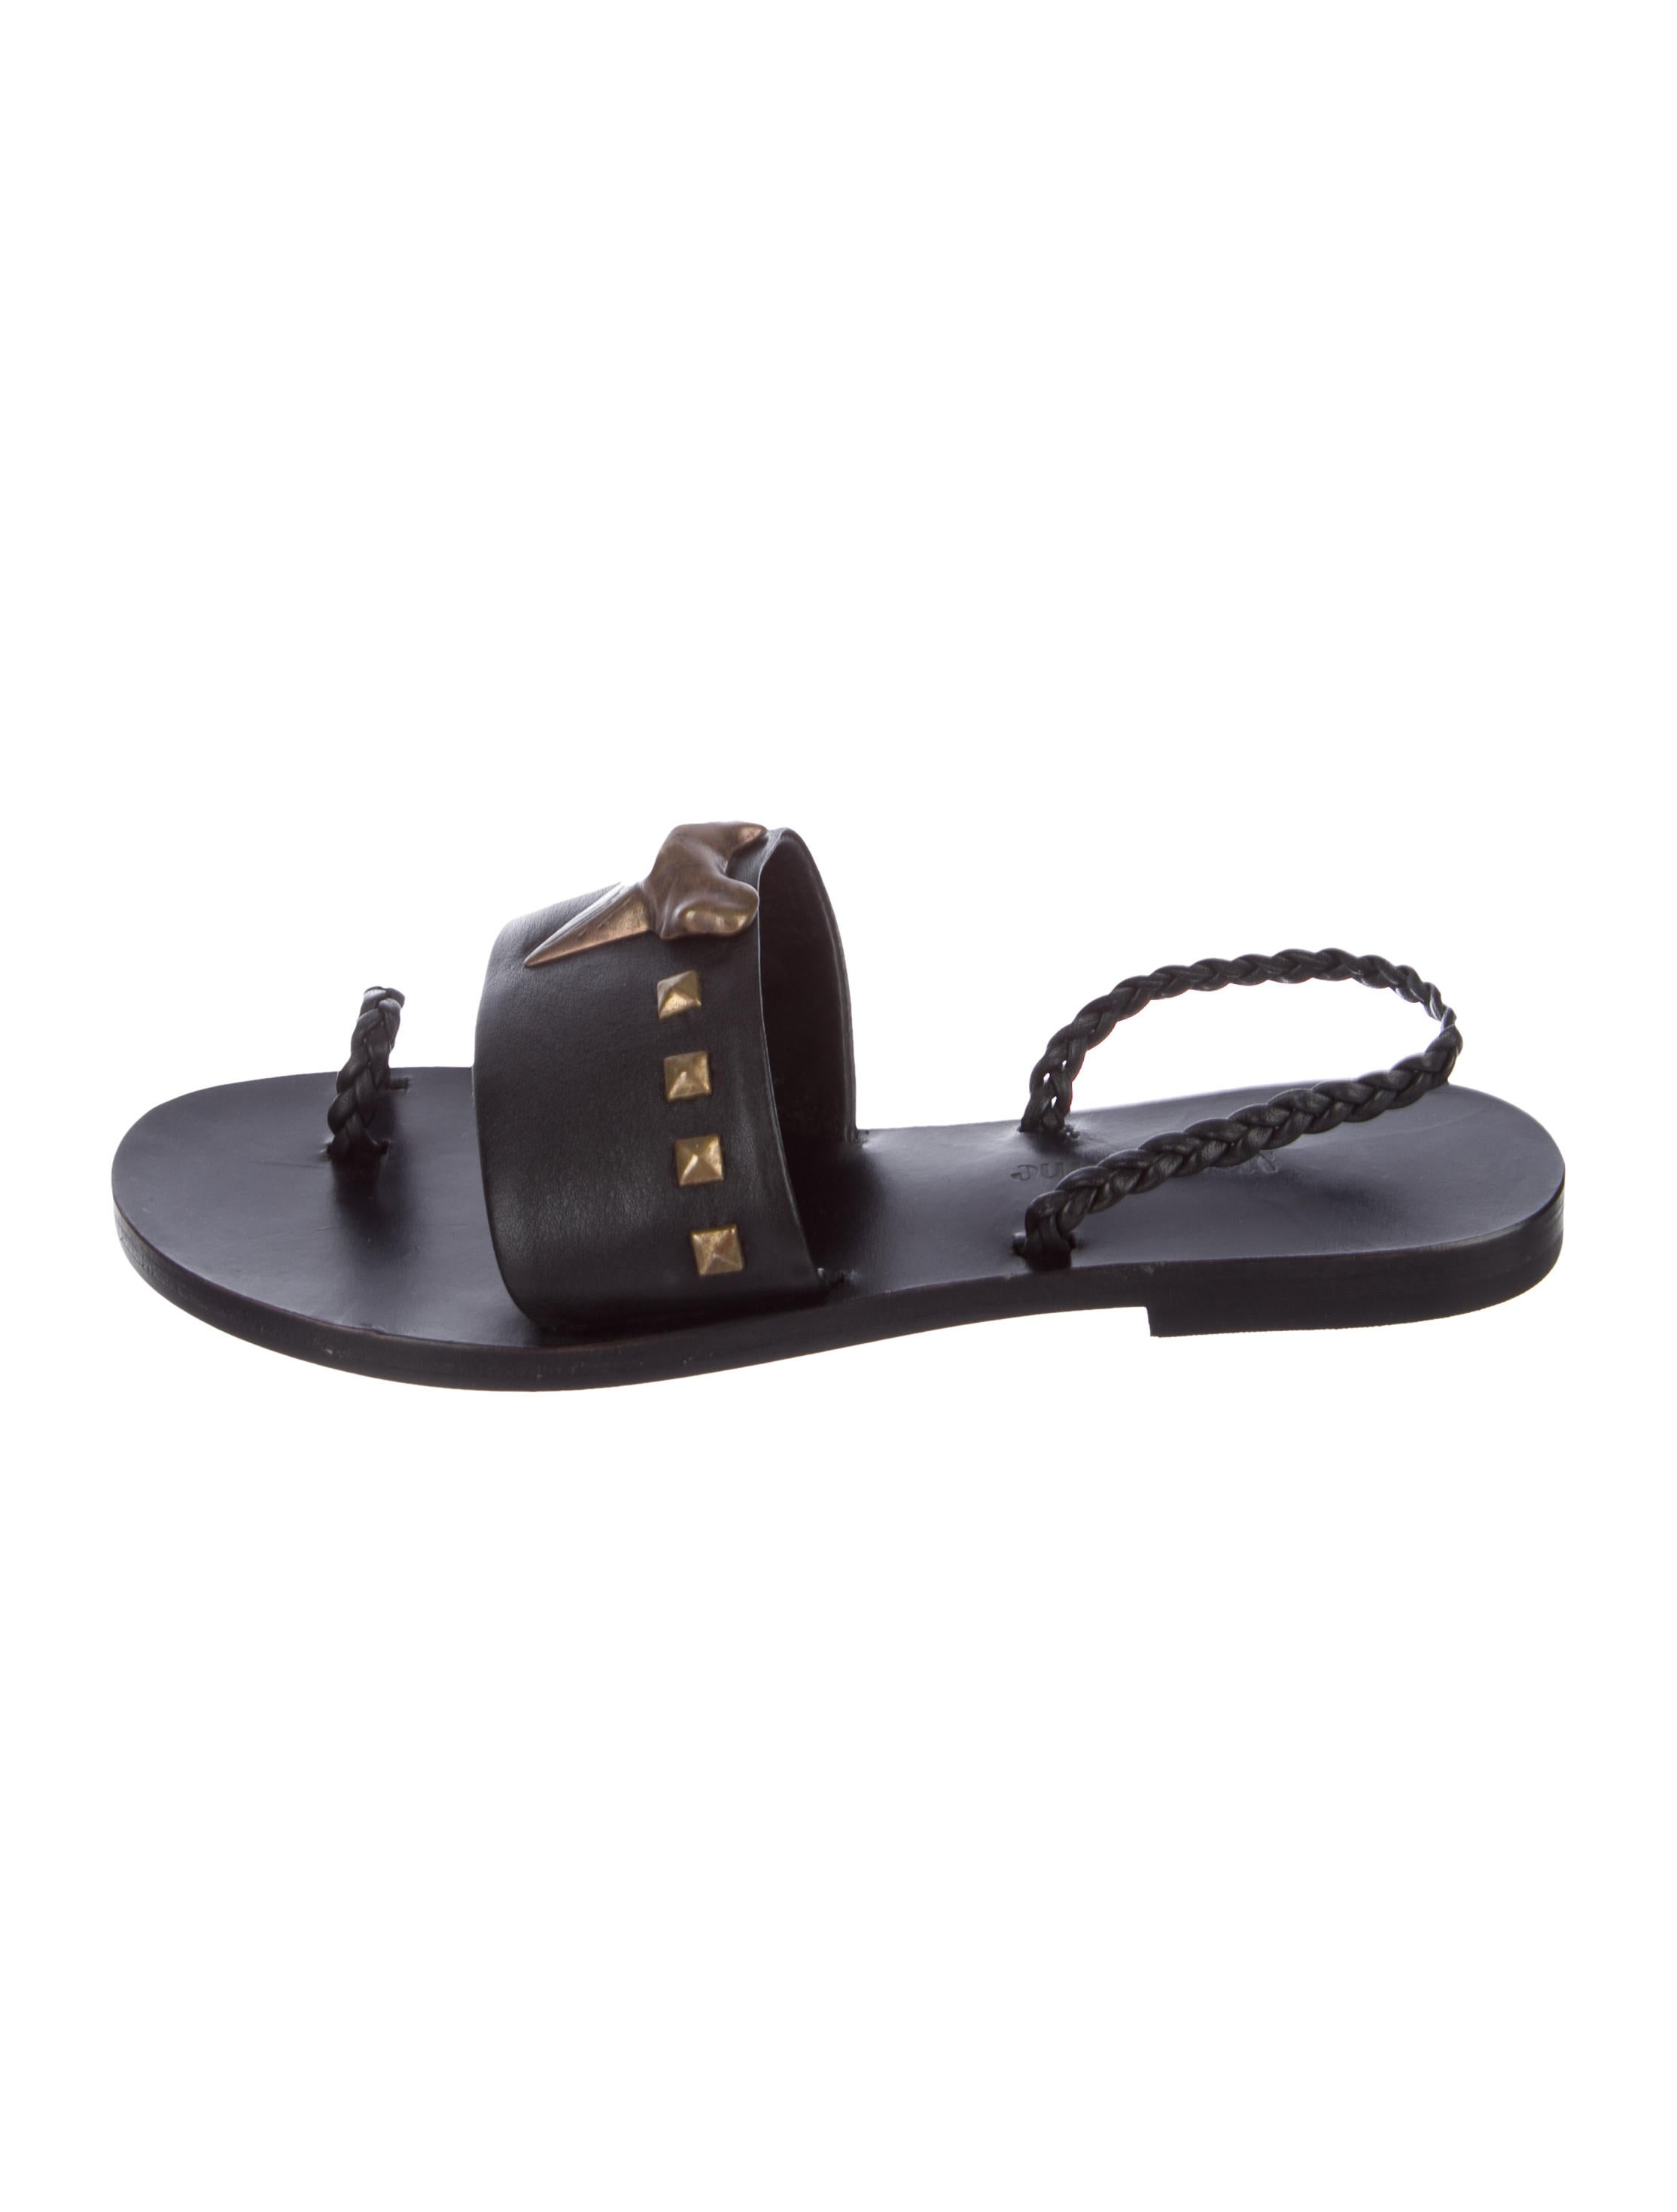 outlet order Mara & Mine Leather Embellished Sandals clearance best geniue stockist online recommend low cost cheap online idIbfYr